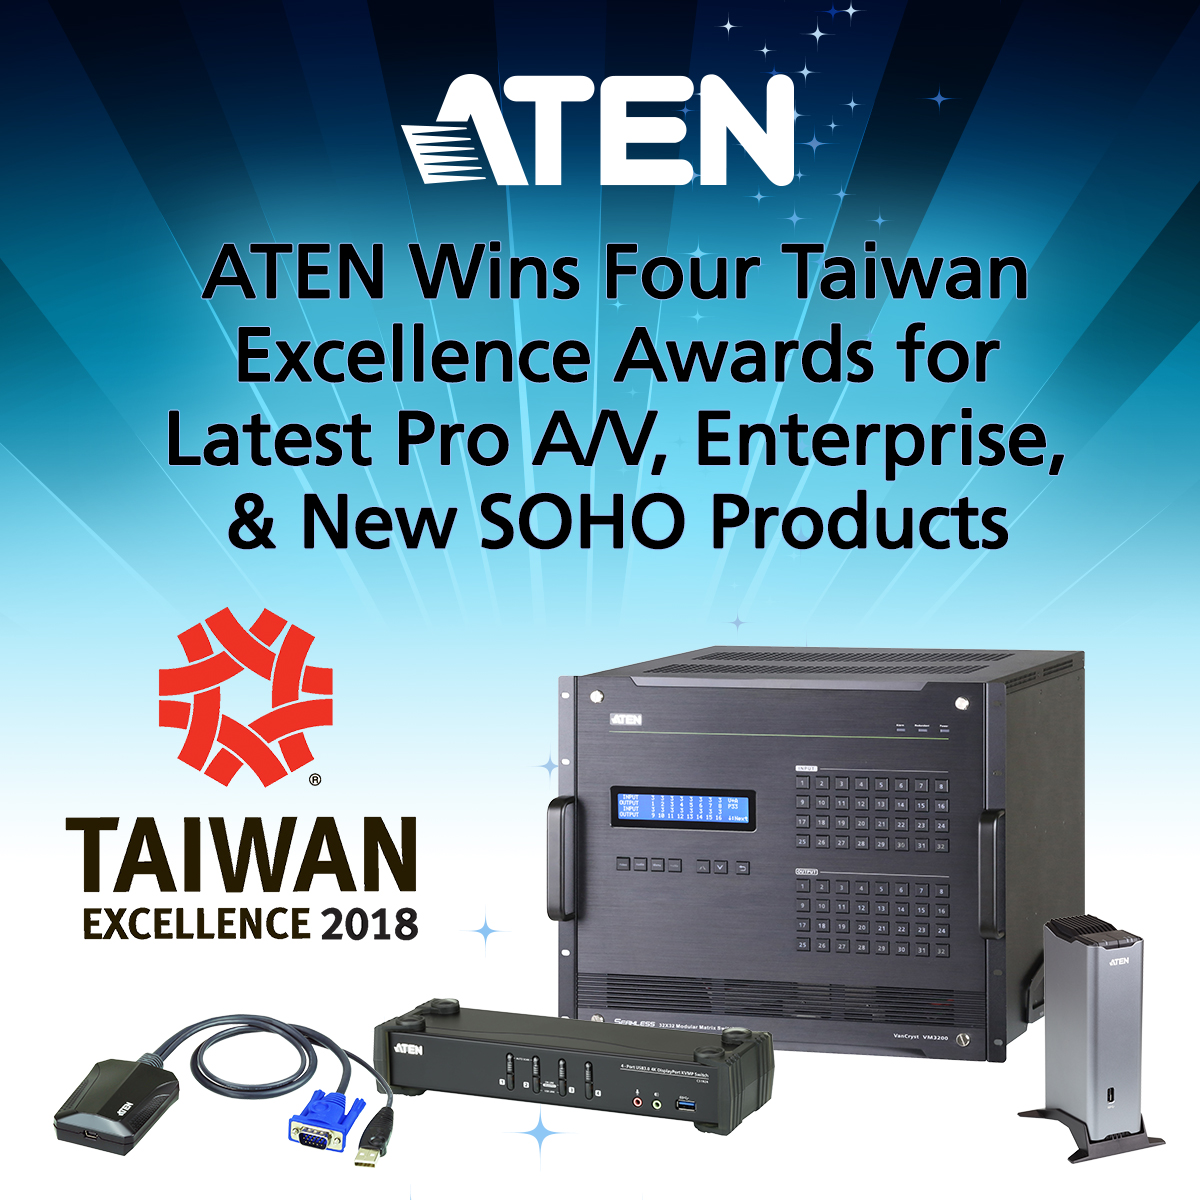 ATEN Wins Four Taiwan Excellence Awards